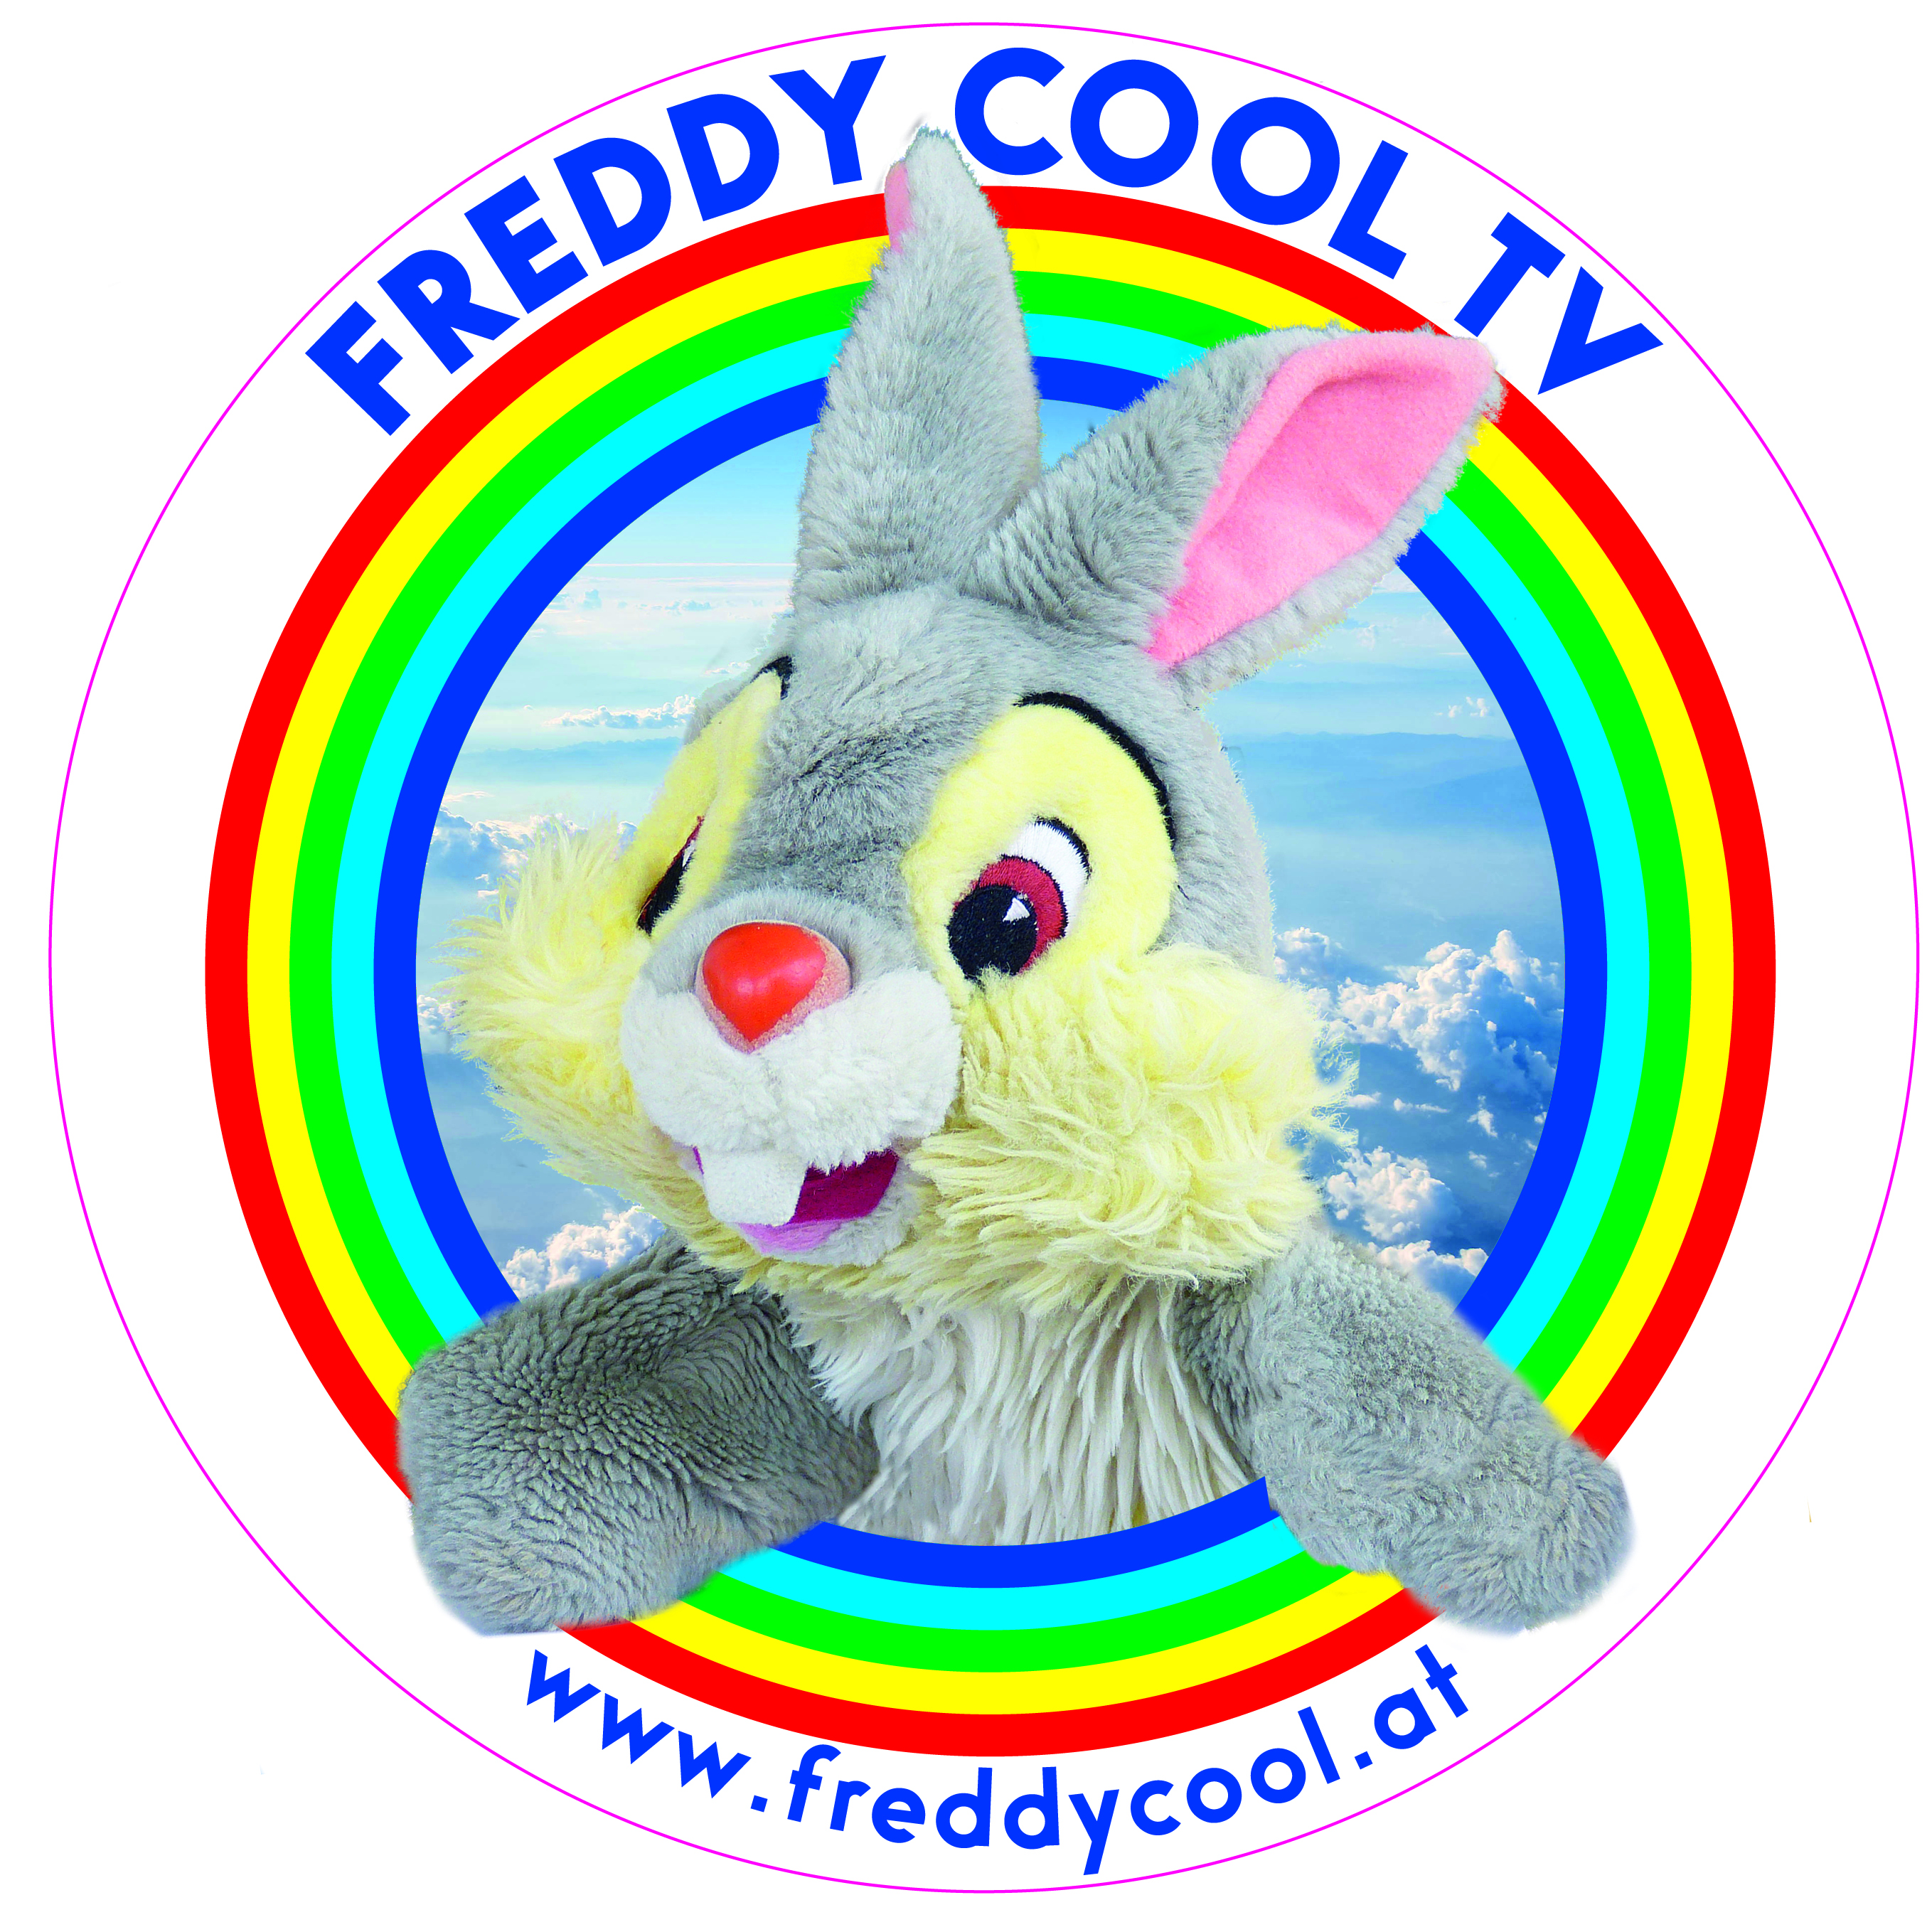 Freddy Cool TV Logo